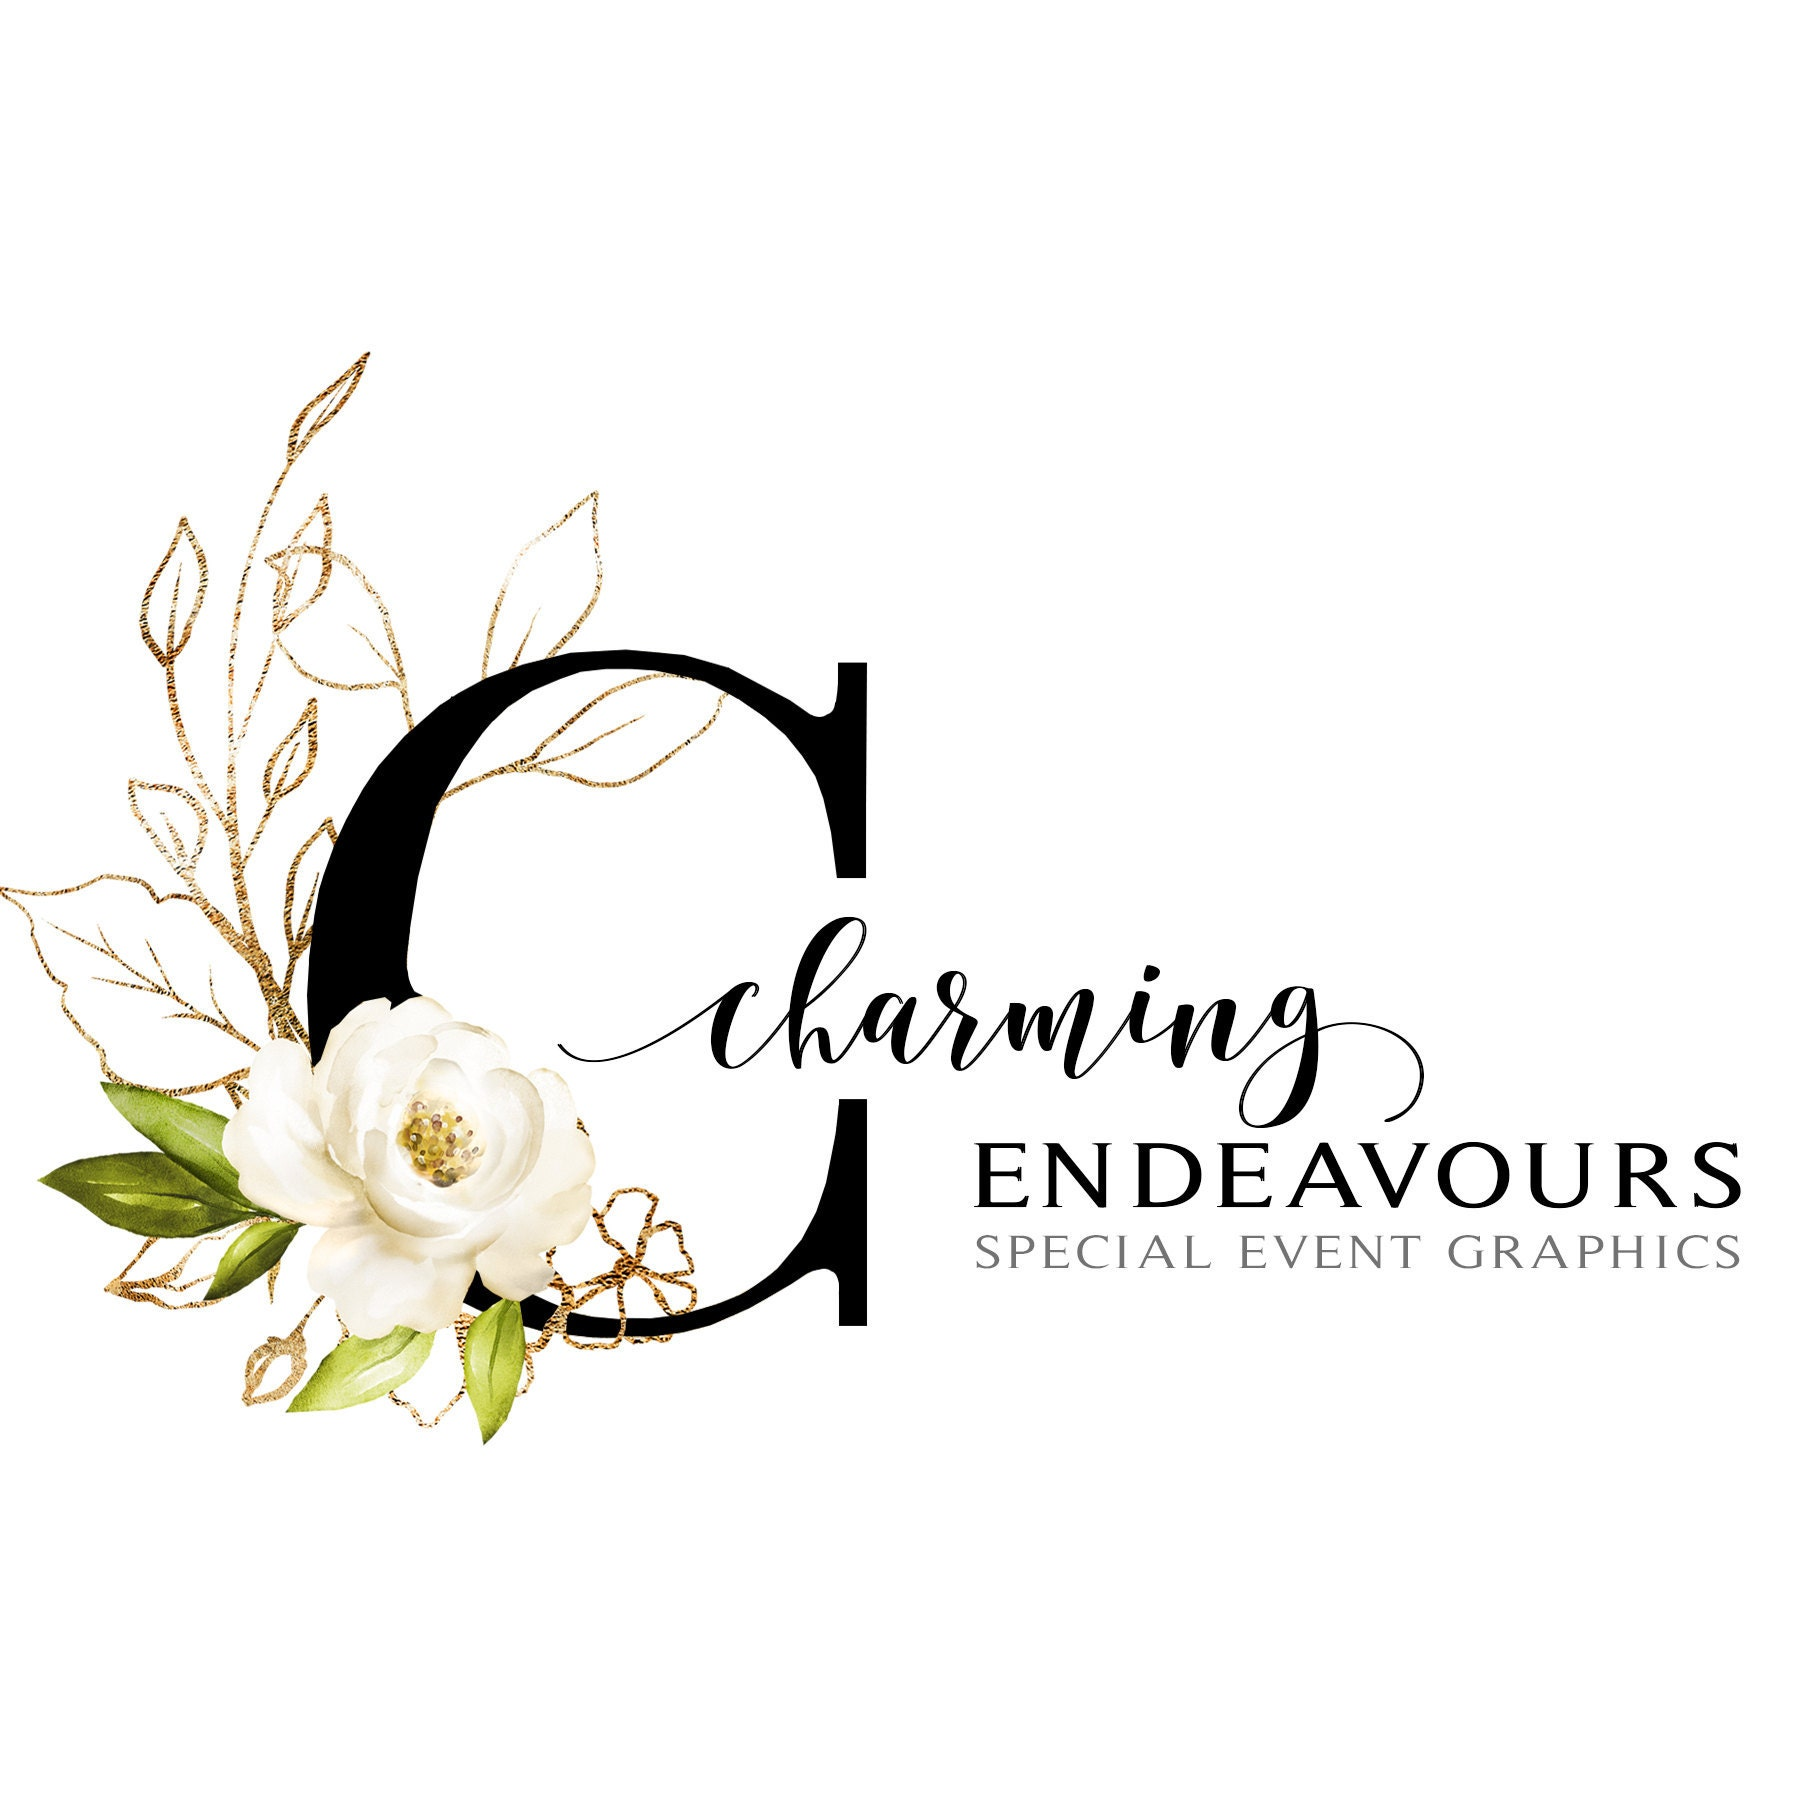 Weddings Di Diy For Printables Bridal Showers Charmingendeavours CrdxBoe